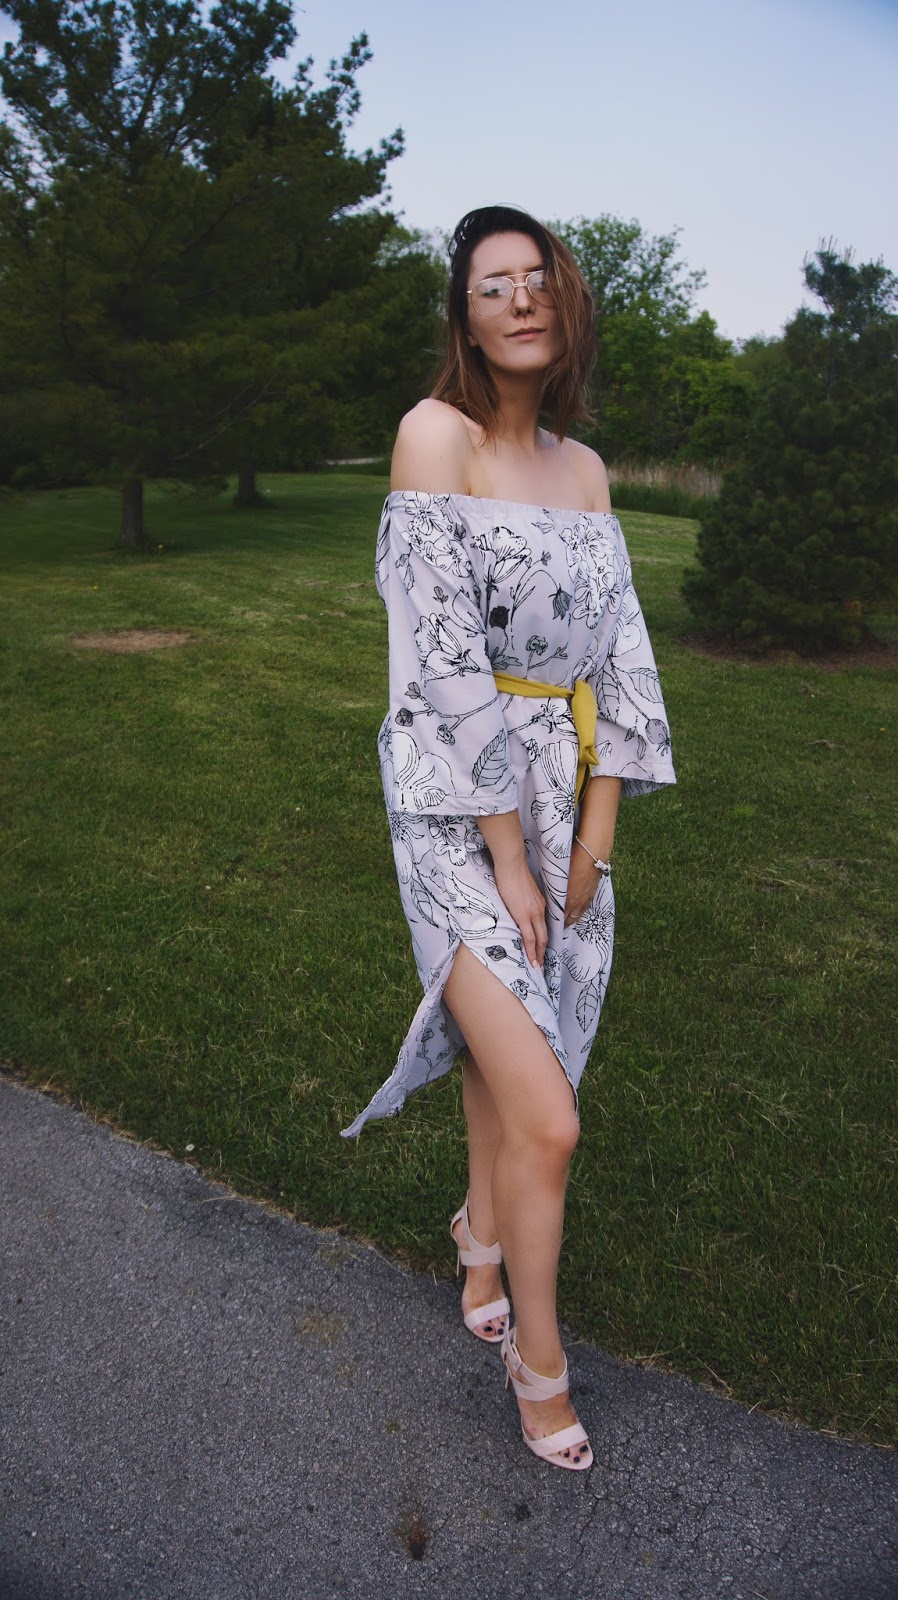 off-the-shoulder dress outfit